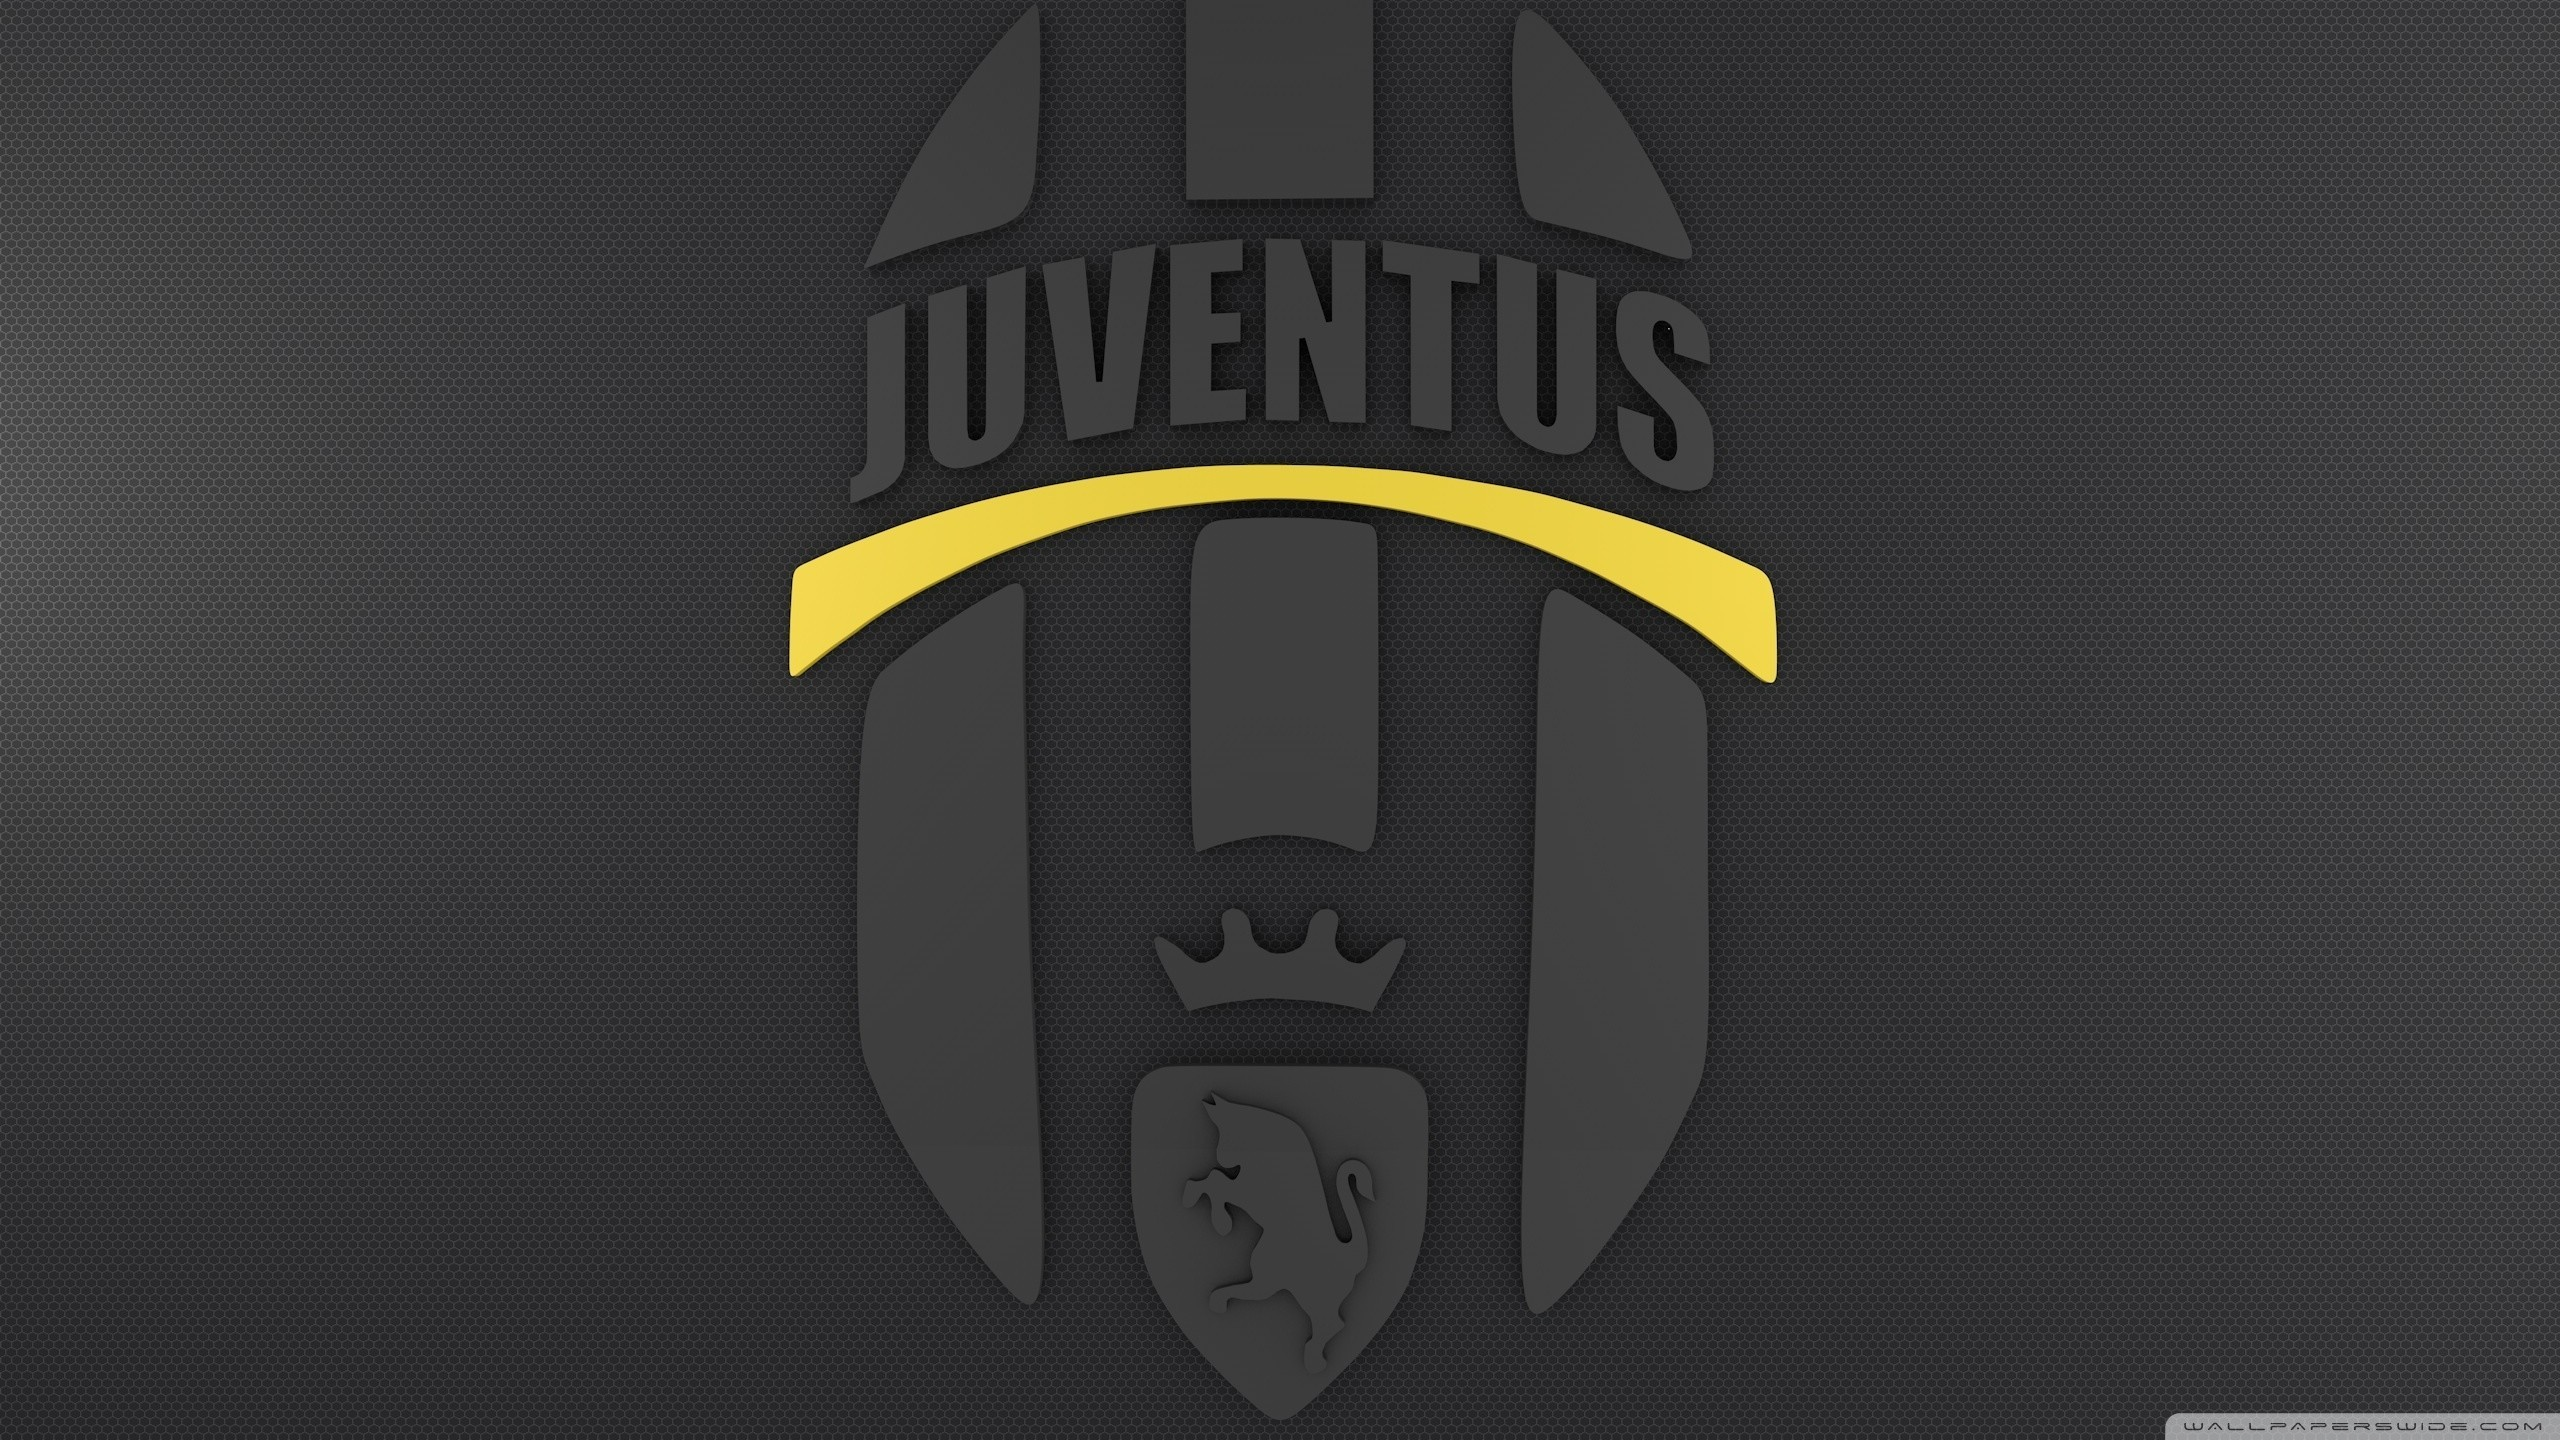 Juventus Wallpaper Iphone X Logo Juventus Wallpaper 2018 75 Images